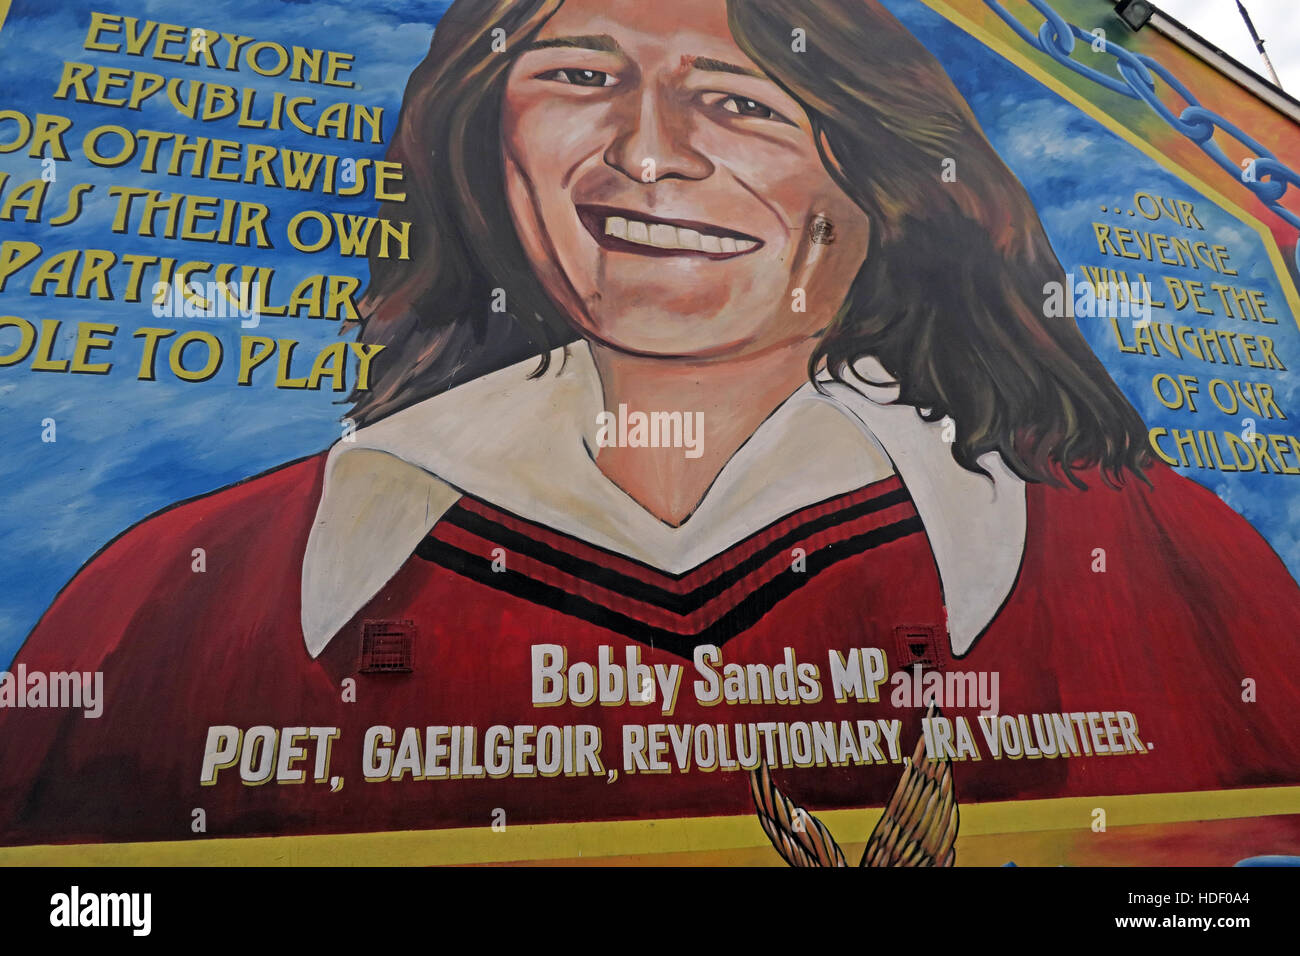 Road,painting,graffiti,resistance,IRA,peace,Northern Ireland,NI,UK,St,street,Eire,Irish,Republic,Irish Republic,conflict,Irish Republican Army,Political Change,Poet,Gaeilgeoir,revolutionary,IRA Volunteer,Bobby Sands MP,GoTonySmith,@HotpixUK,Tony,Smith,UK,GB,Great,Britain,United,Kingdom,Irish,British,Ireland,problem,with,problem with,issue with,NI,Northern,Northern Ireland,Belfast,City,Centre,Art,Artists,the,troubles,The Troubles,Good Friday Agreement,Peace,honour,painting,wall,walls,tribute,republicanism,Fight,Justice,West,Beal,feirste,martyrs,social,tour,tourism,tourists,urban,six,counties,6,backdrop,county,Antrim,occupation,good,Friday,agreement,peace,reconciliation,IRA,terror,terrorists,genocide,Buy Pictures of,Buy Images Of,Images of,Stock Images,Tony Smith,United Kingdom,Great Britain,British Isles,republican cause